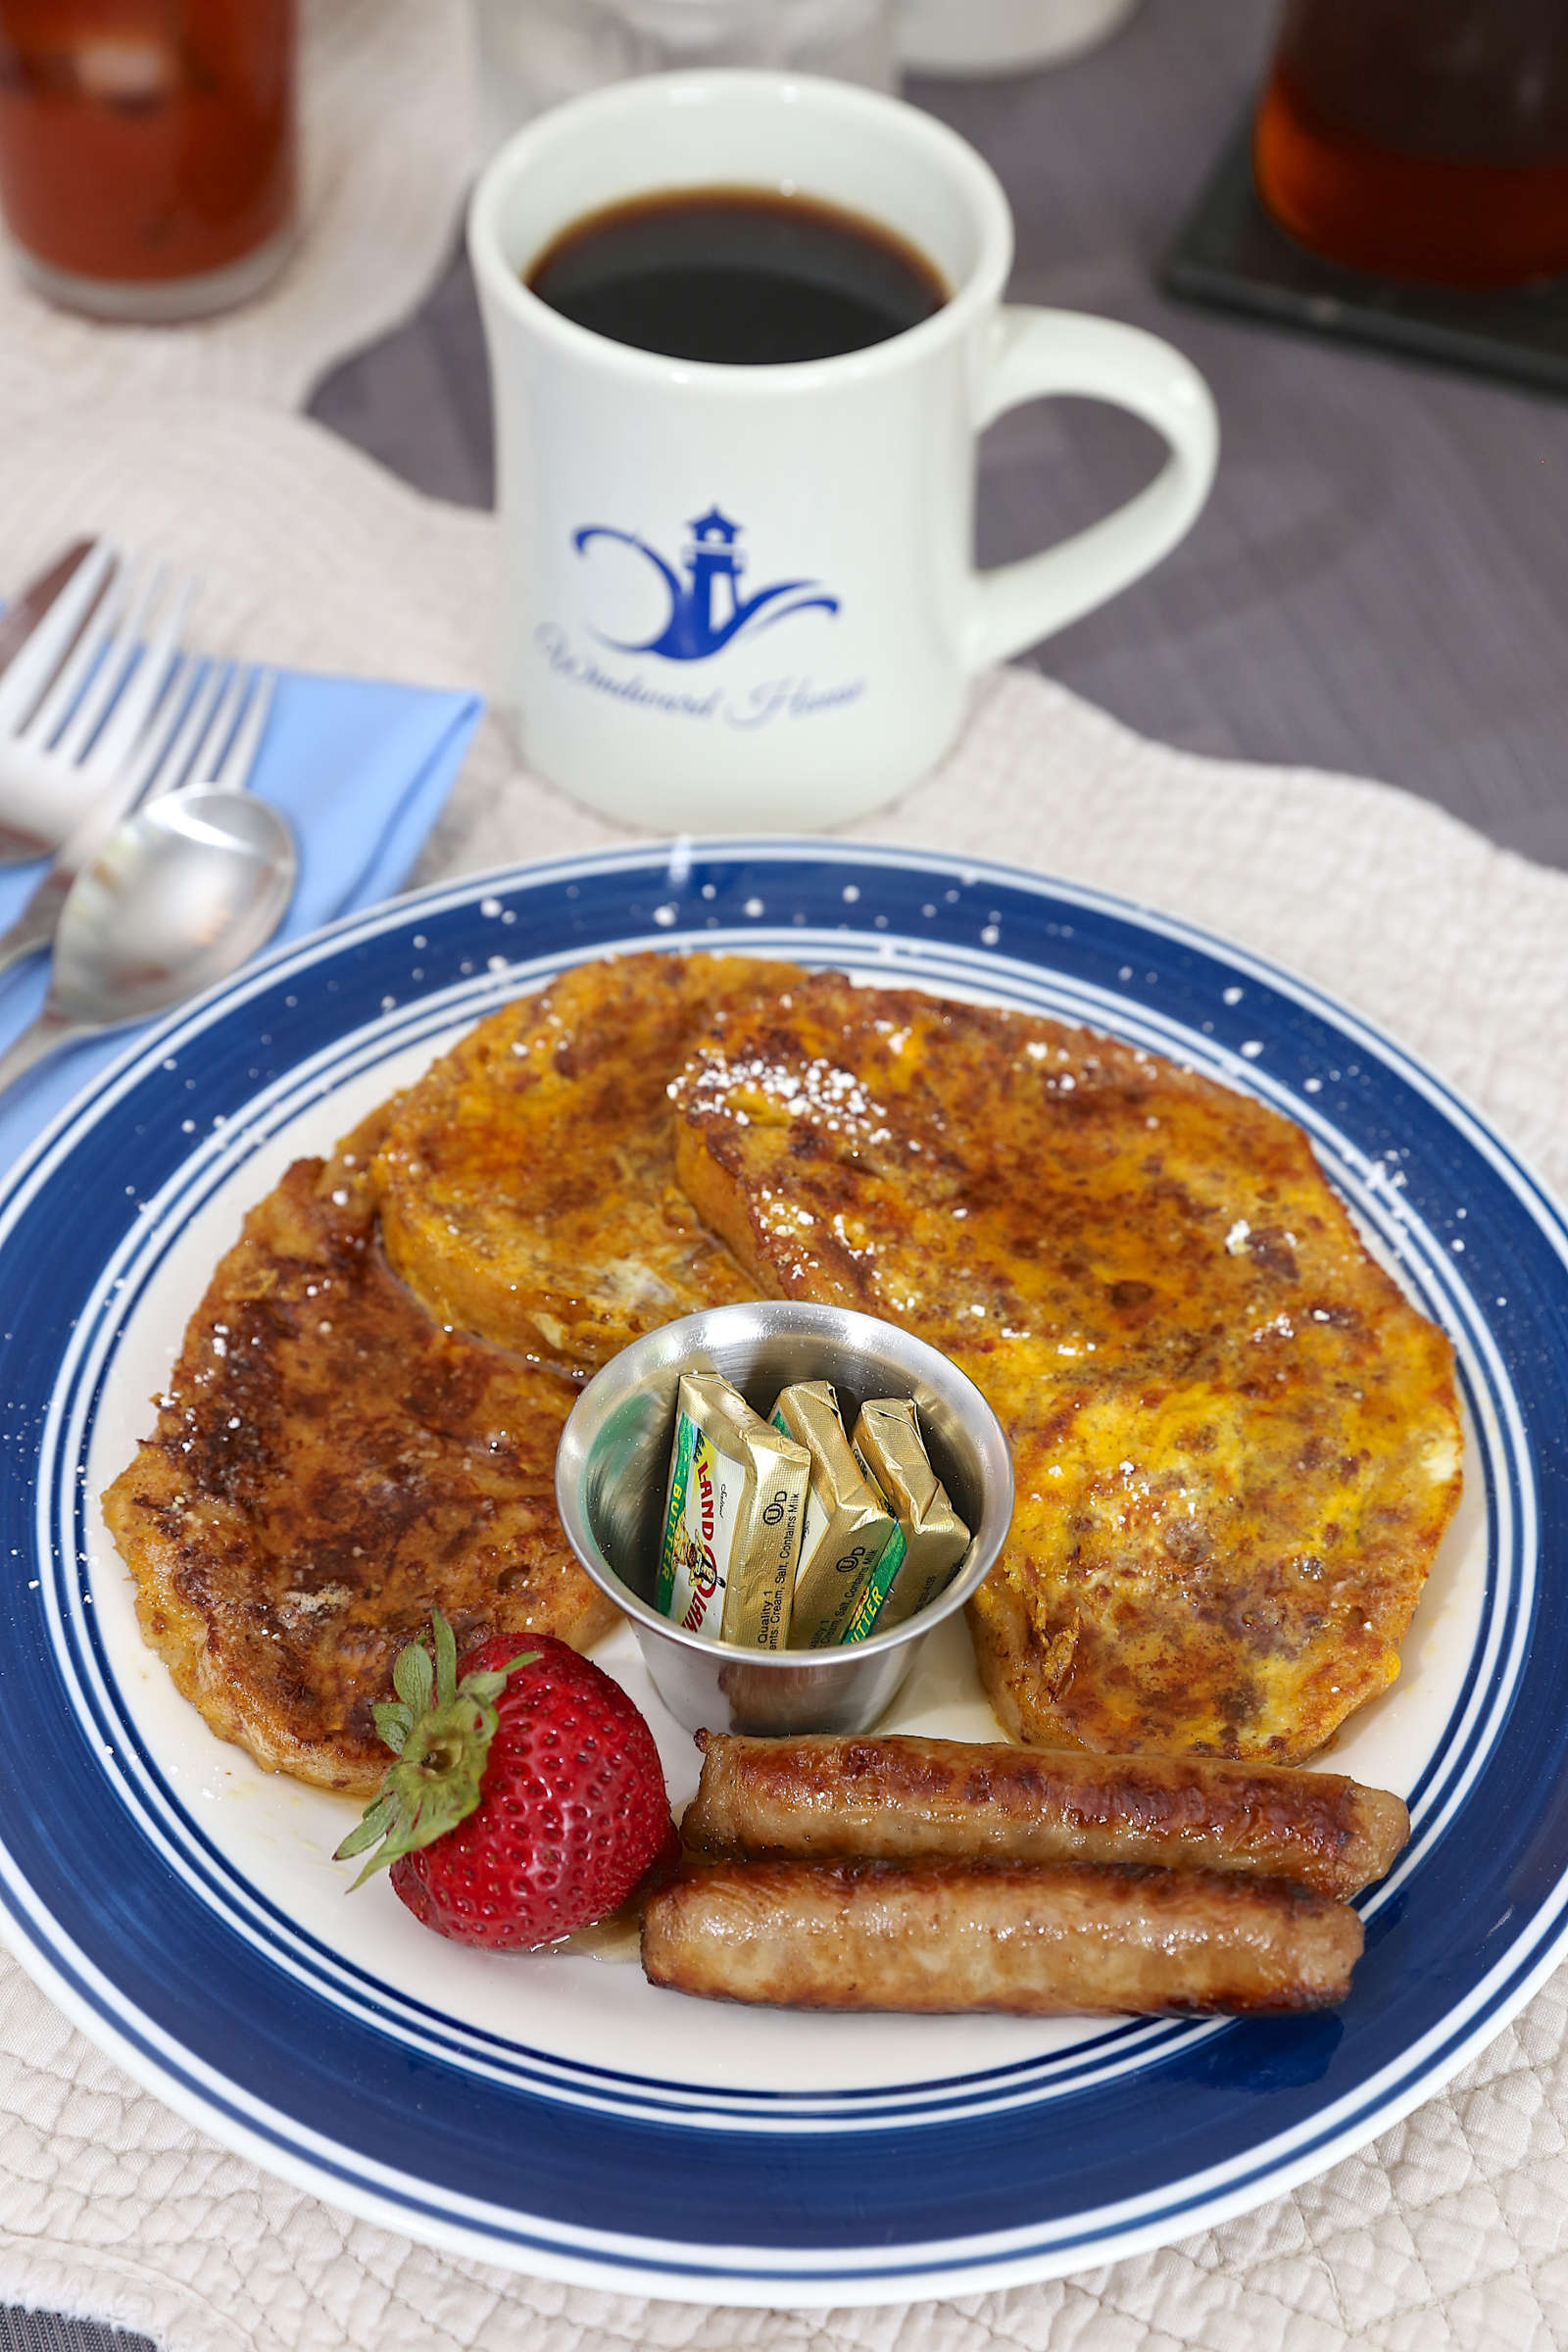 french-toast-and-sausage-web.jpg